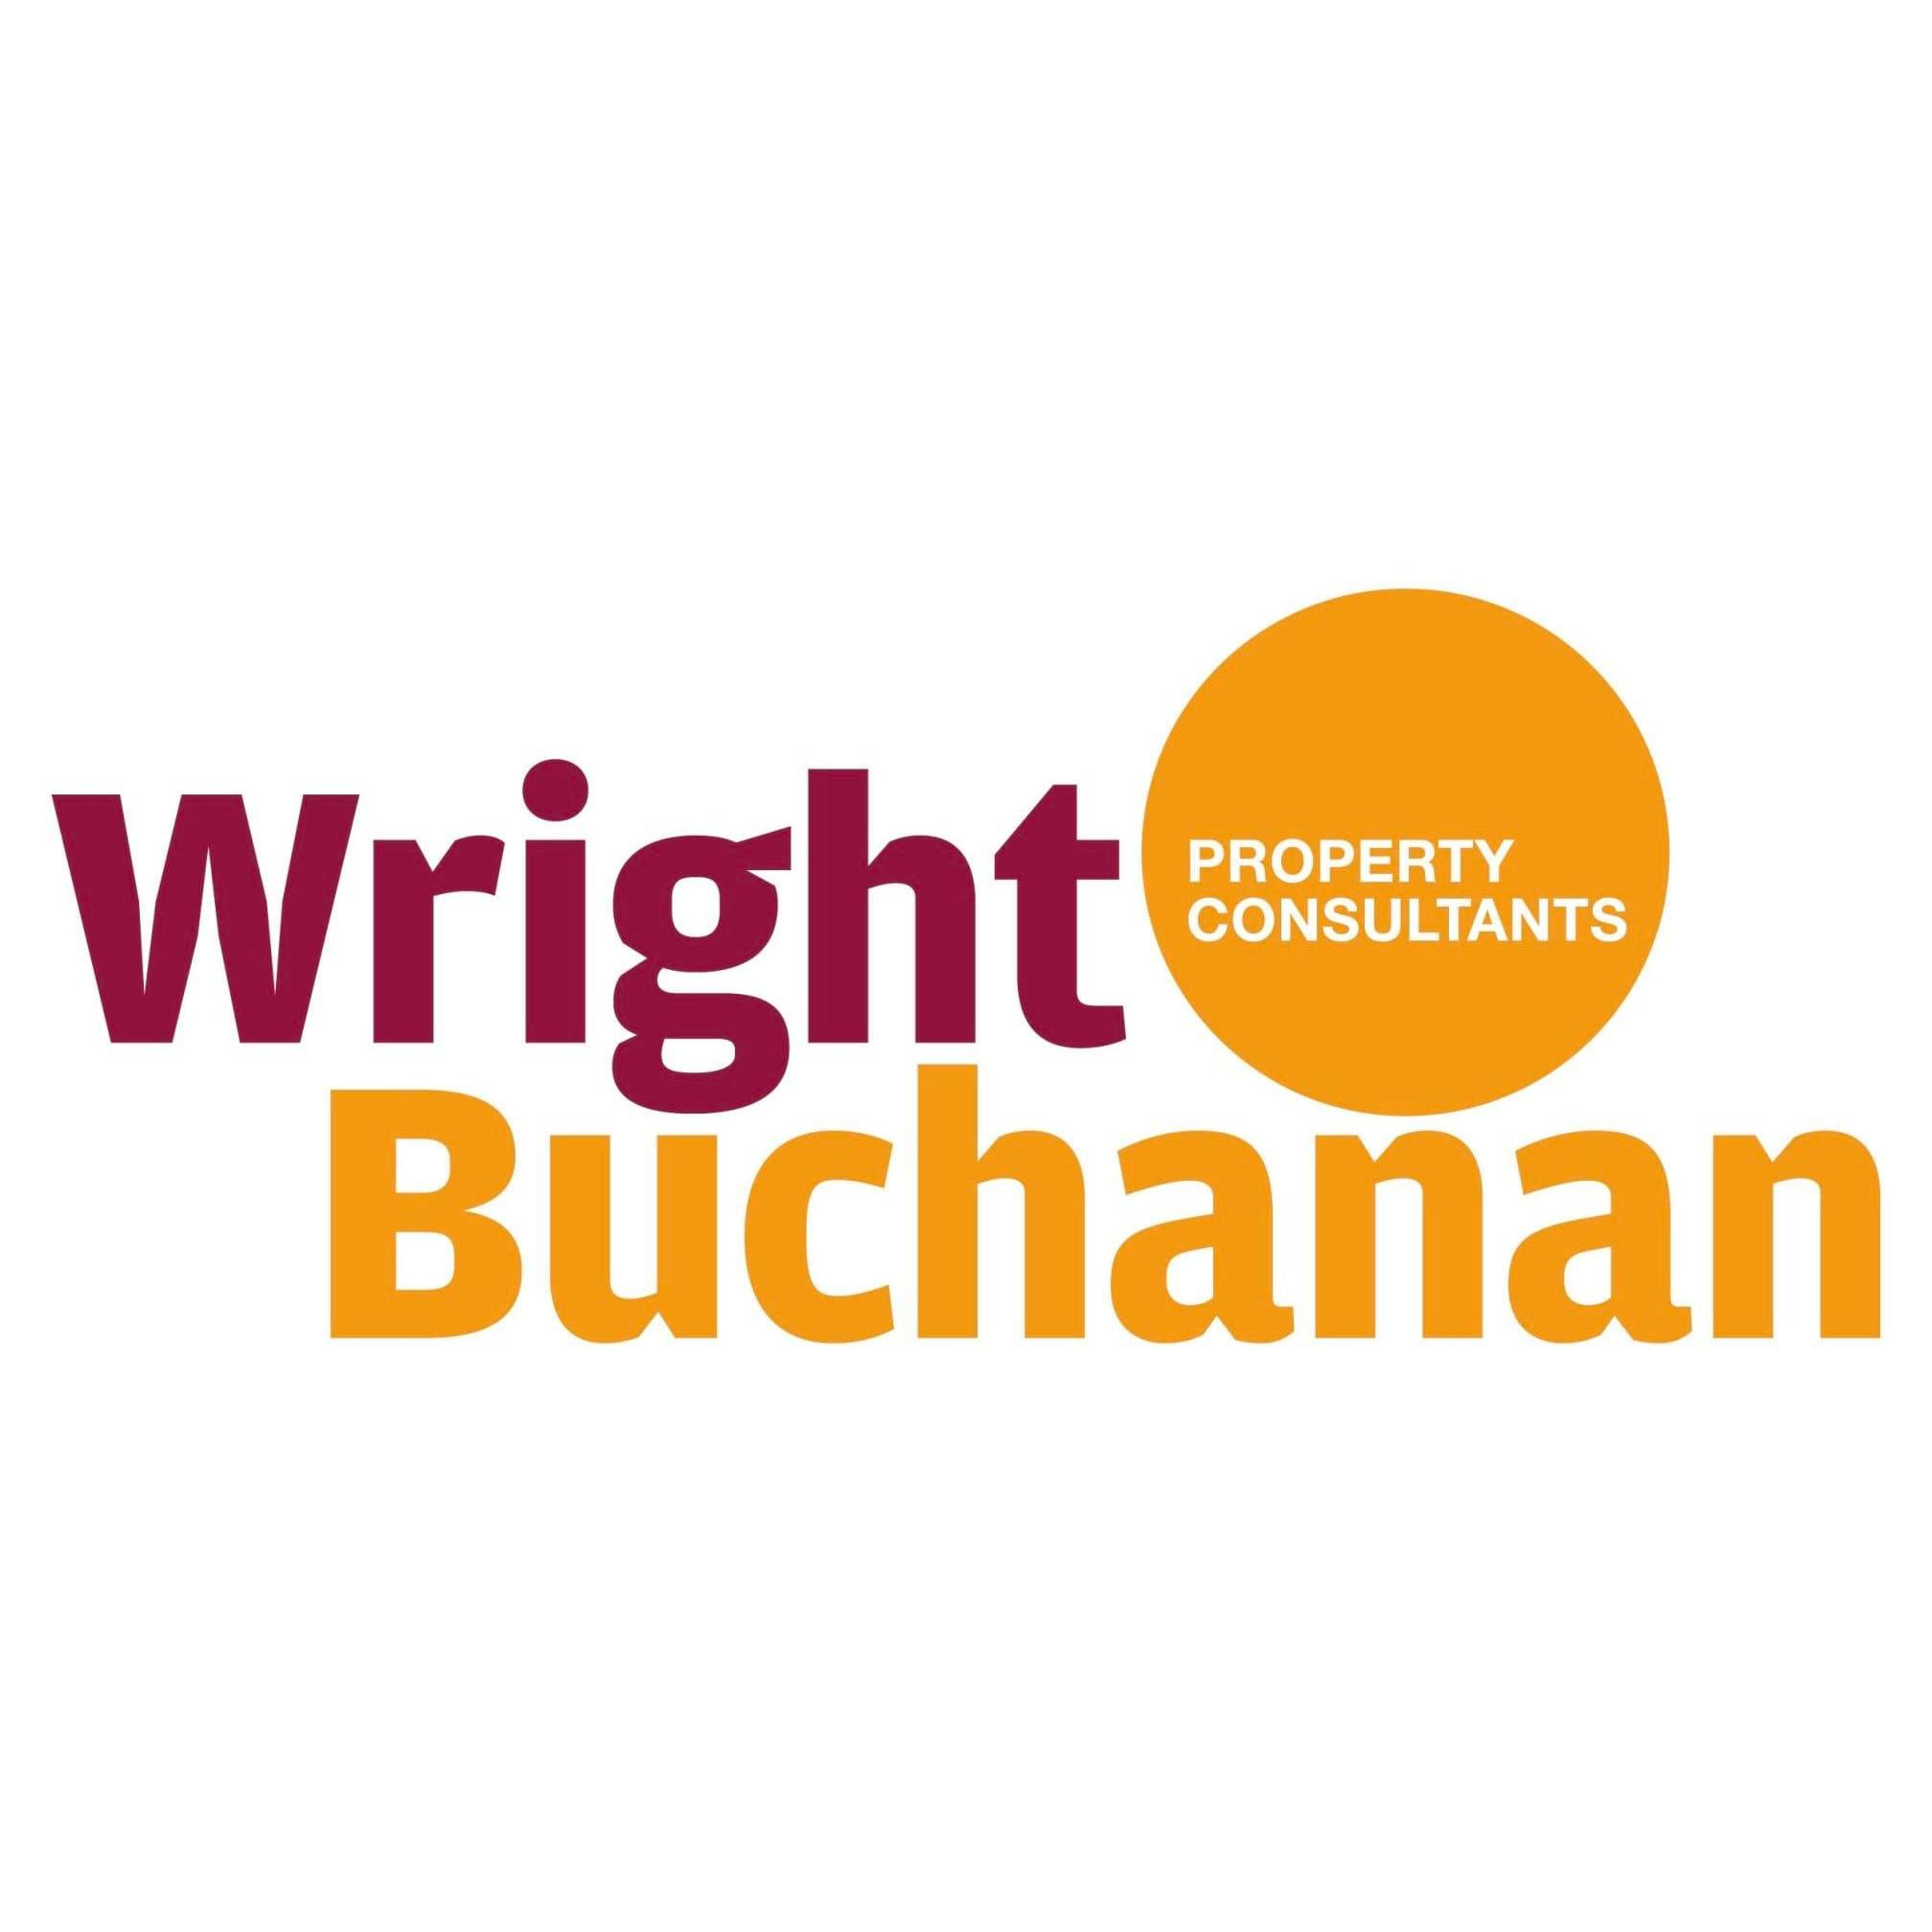 Wright Buchanan Property Consultant